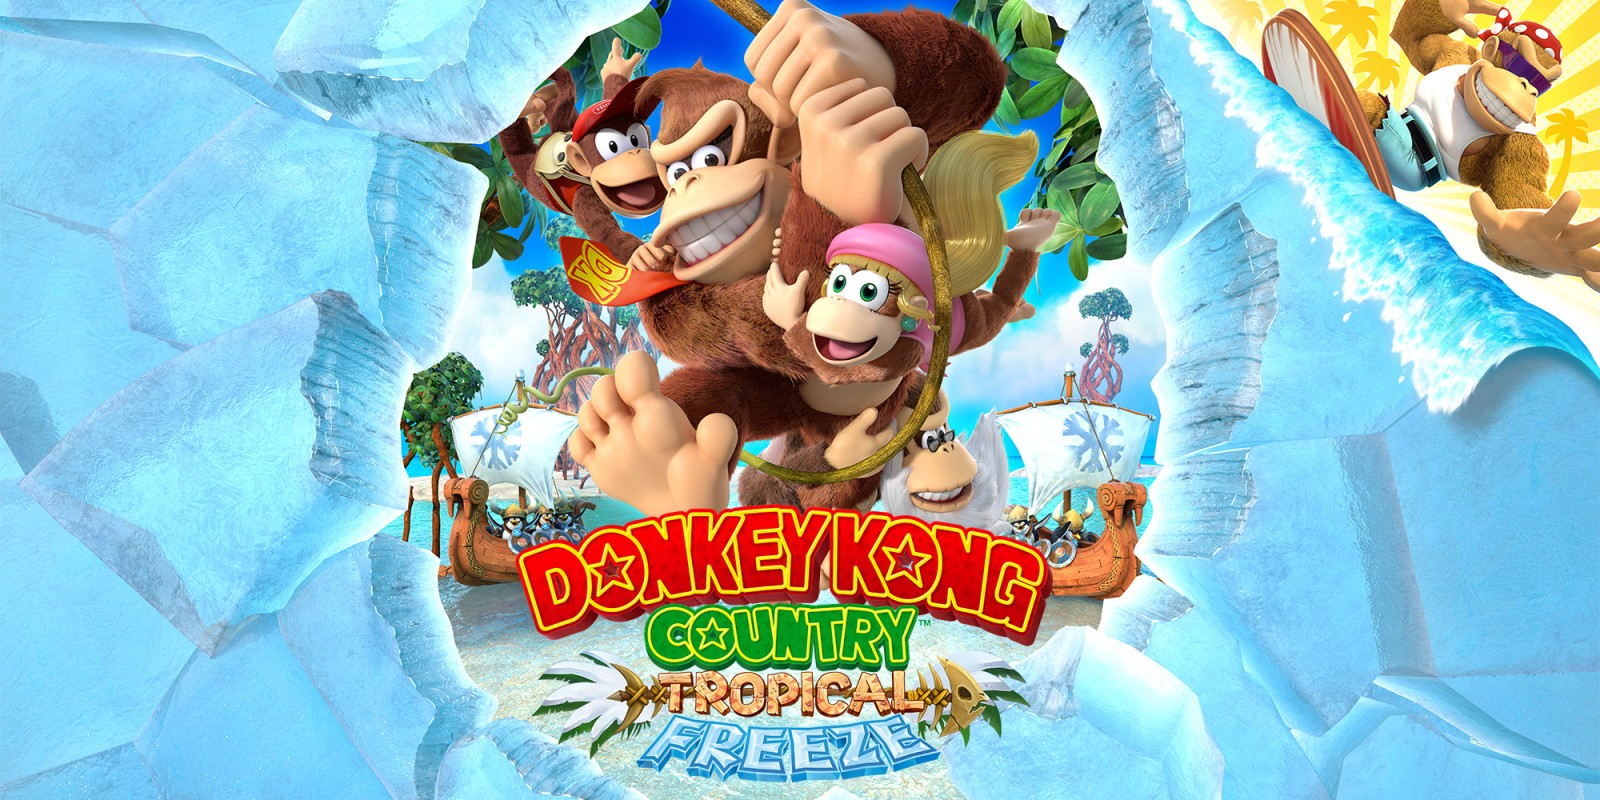 Donkey Kong Country Donkey Kong Country Tropical Freeze